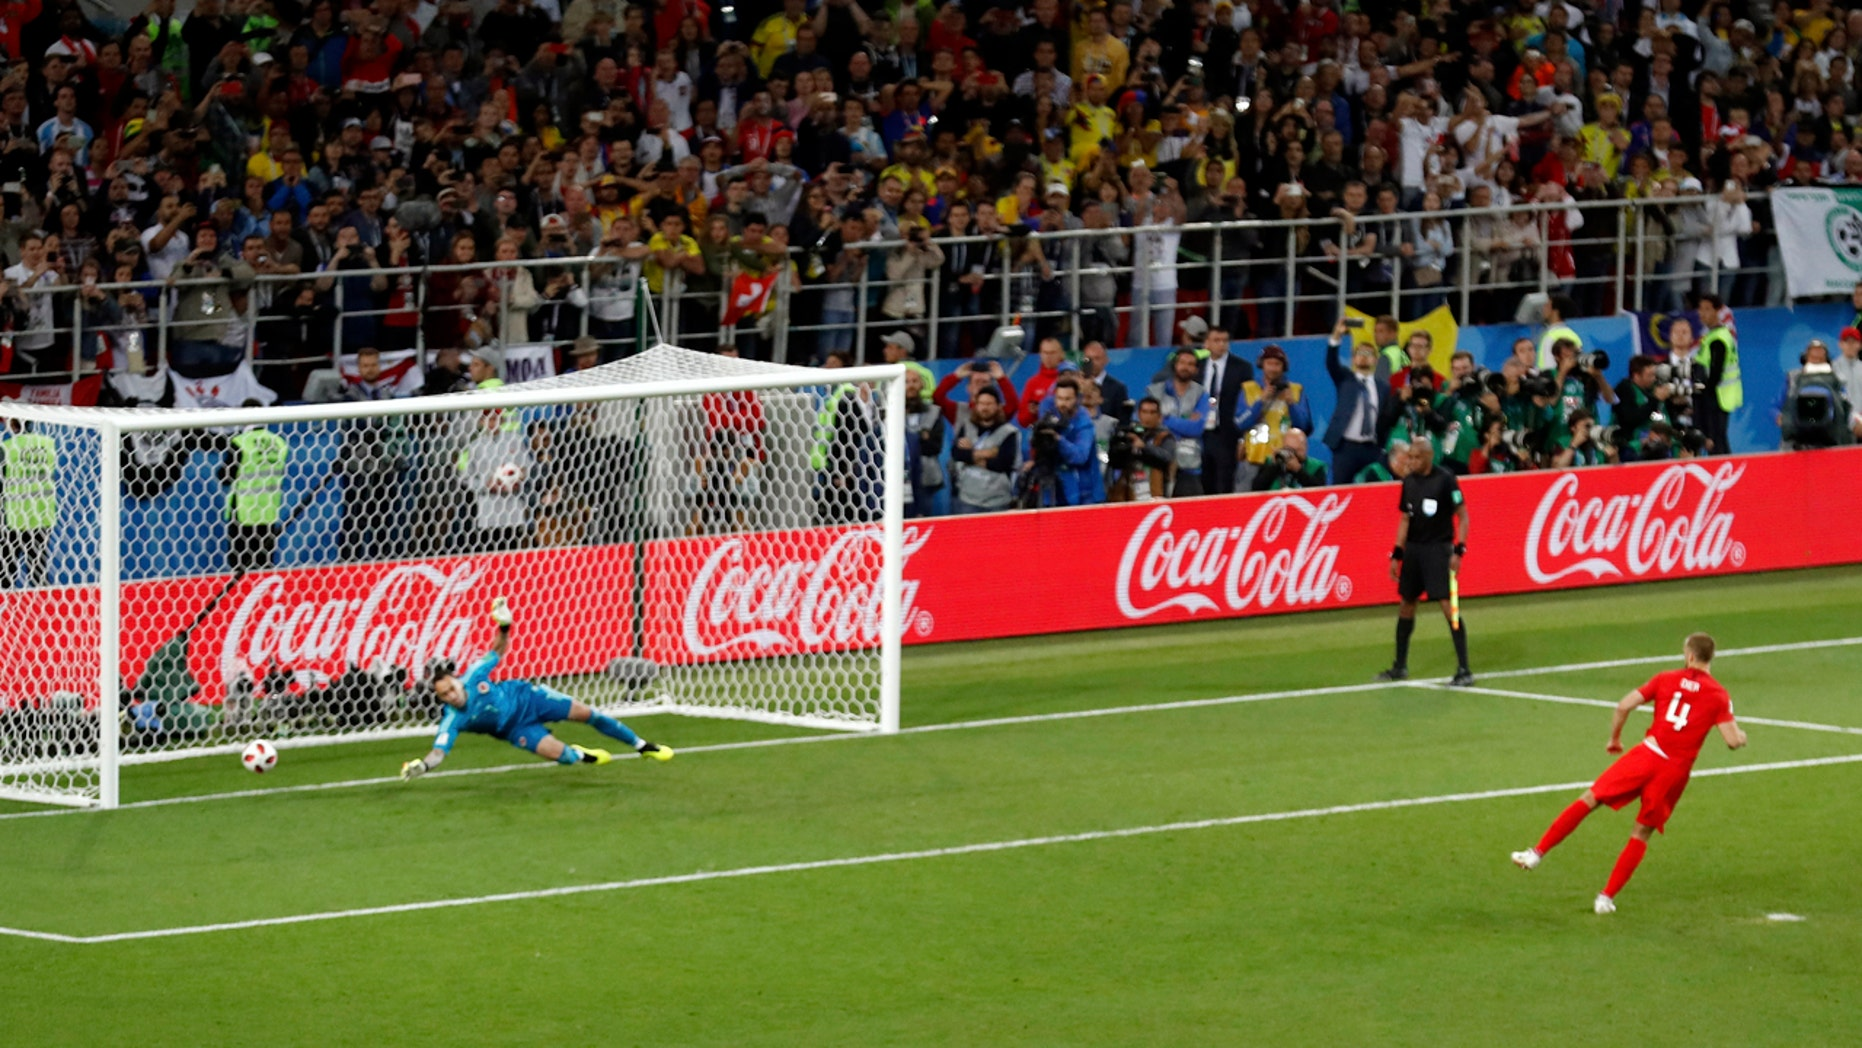 England's Eric Dier scores the winning penalty past Colombia's David Ospina in the World Cup last 16 match at Spartak Stadium, Moscow.